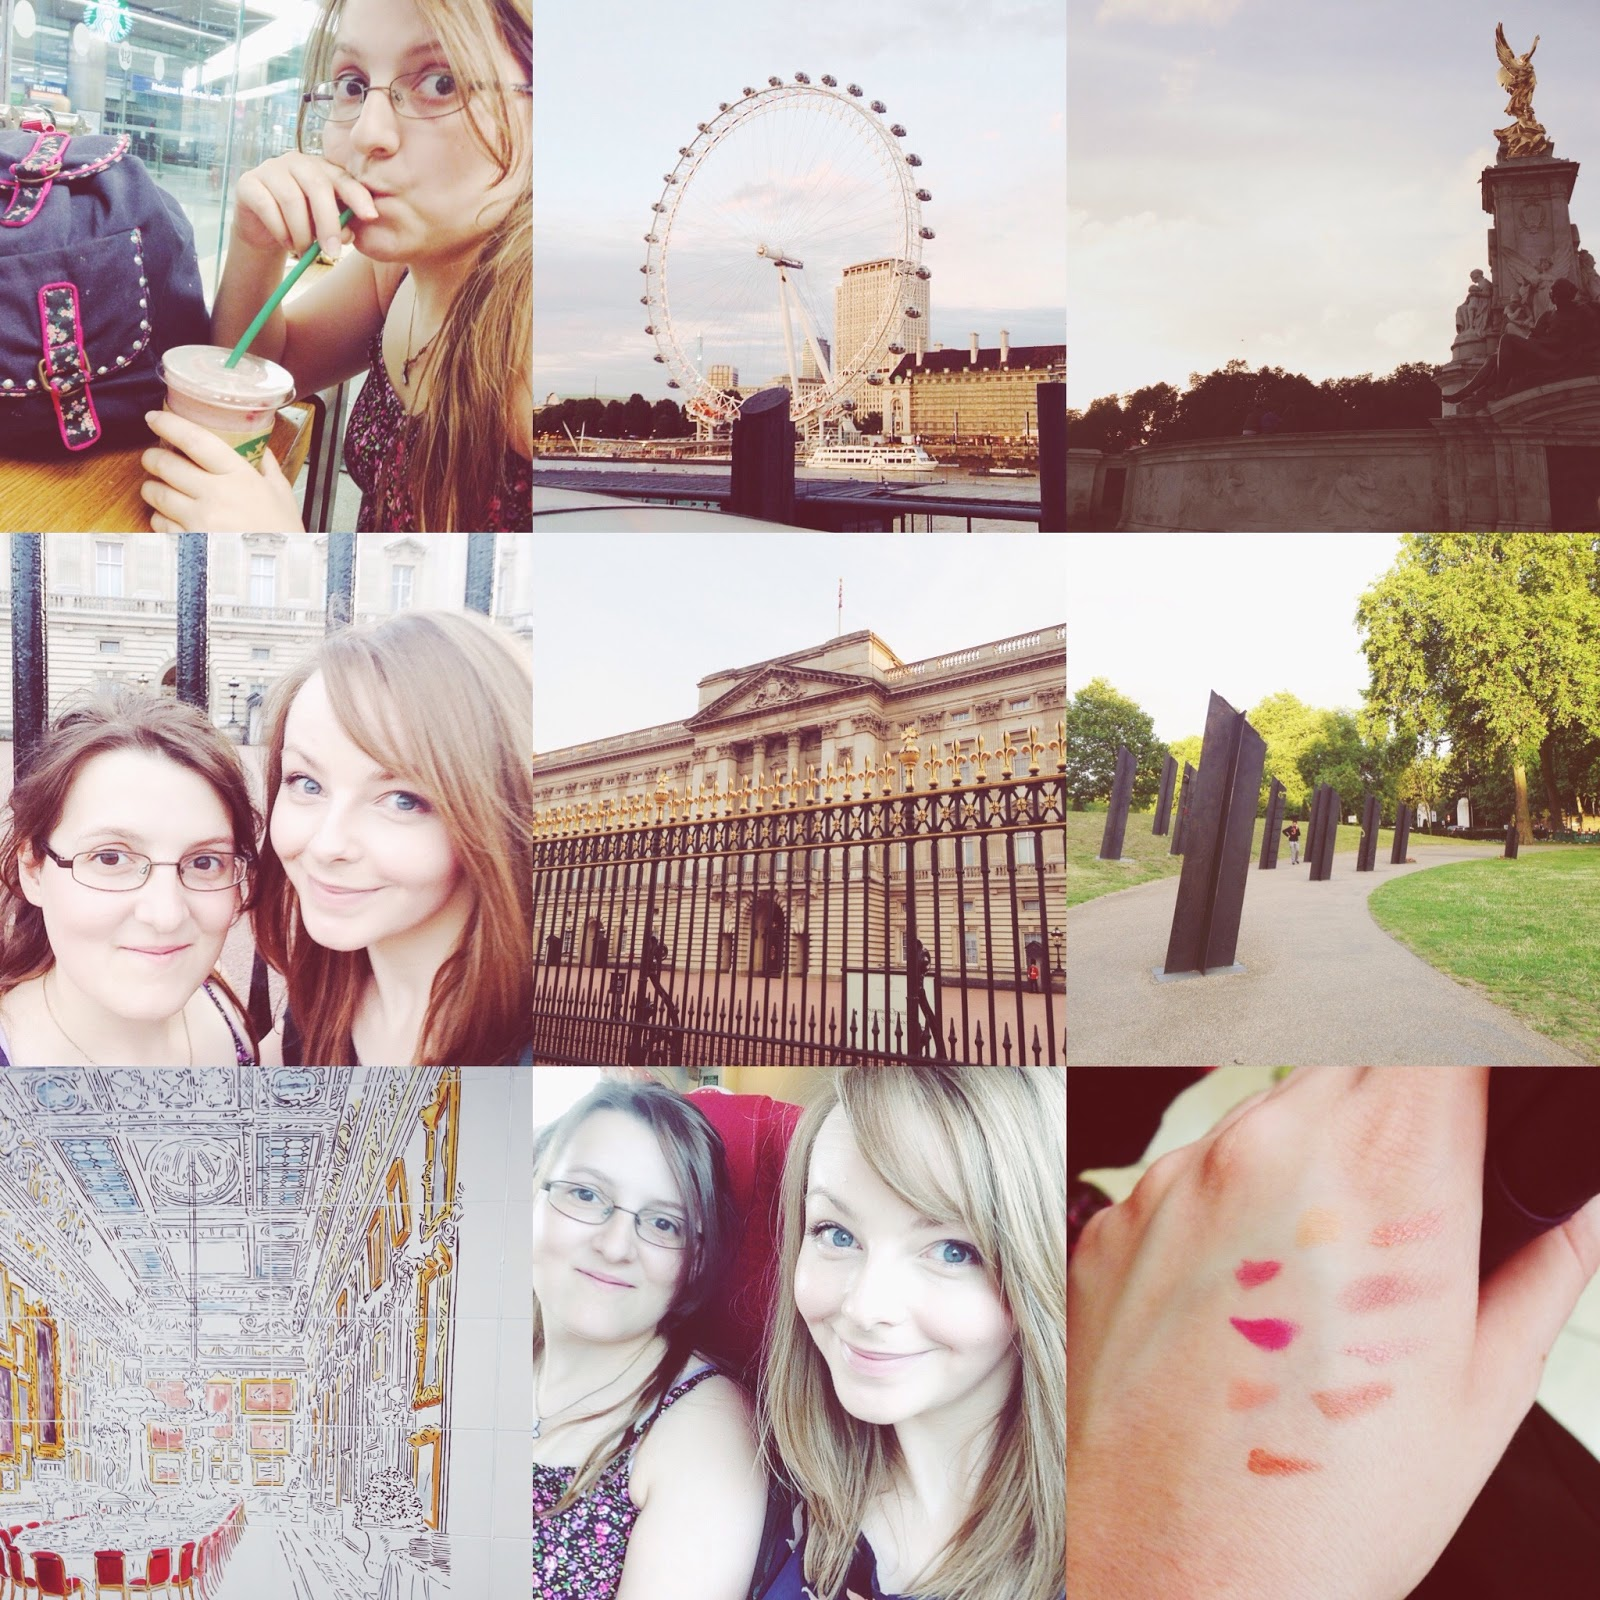 Instagram, Montage, London